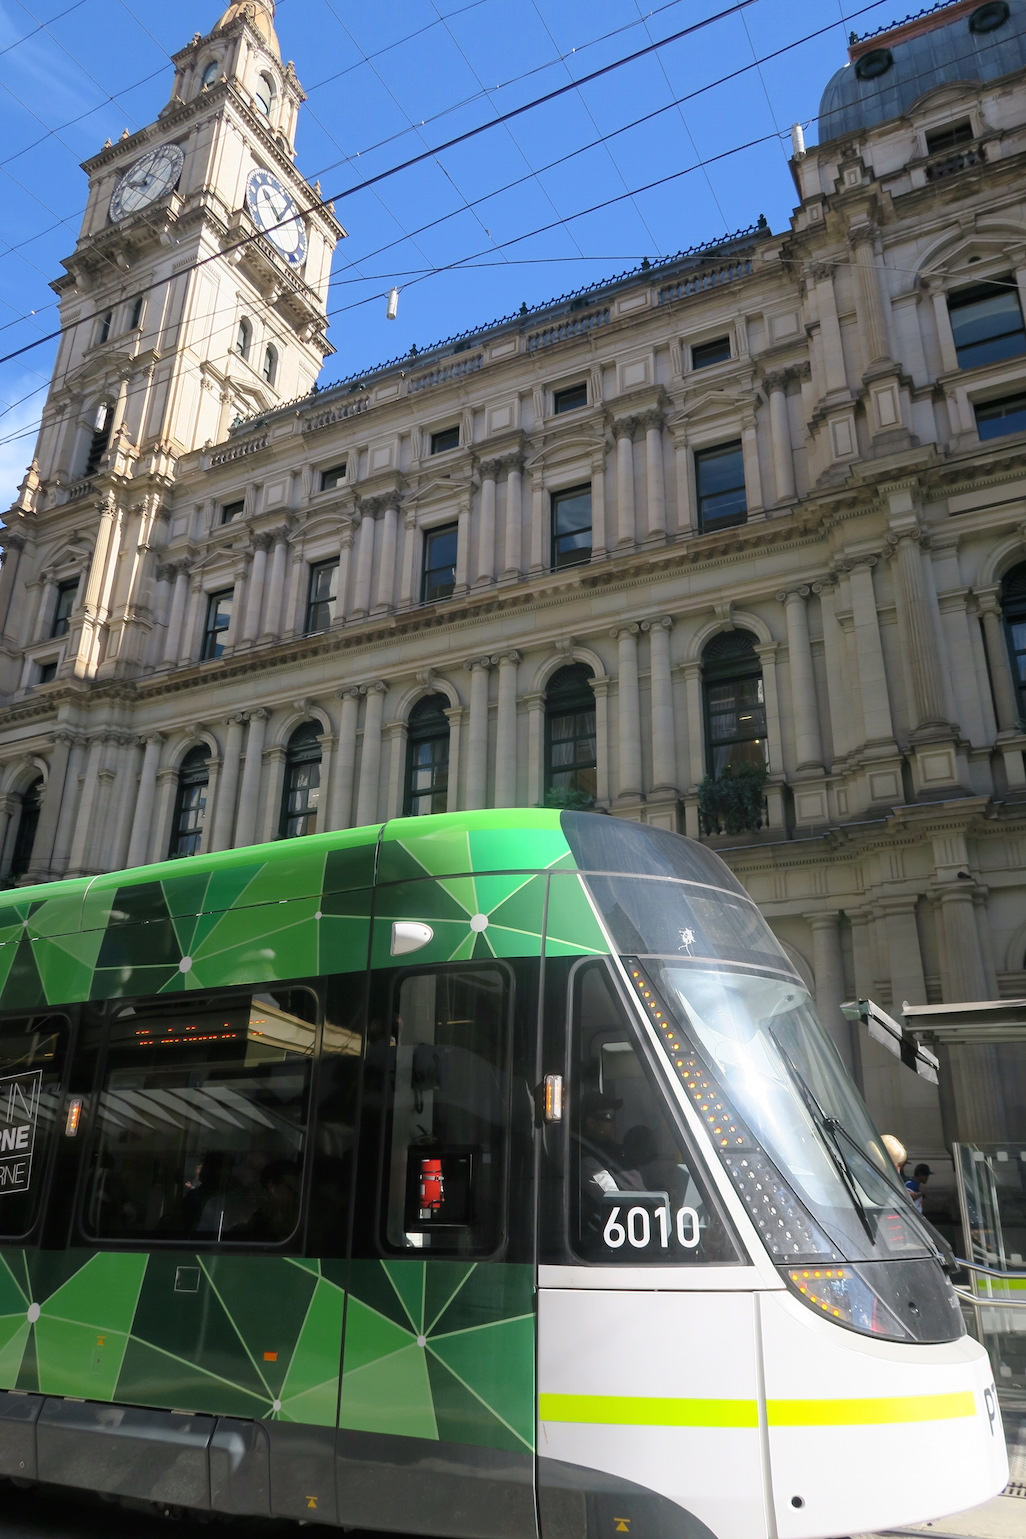 Moving to Melbourne, Bourke Street Mall, Melbourne trams